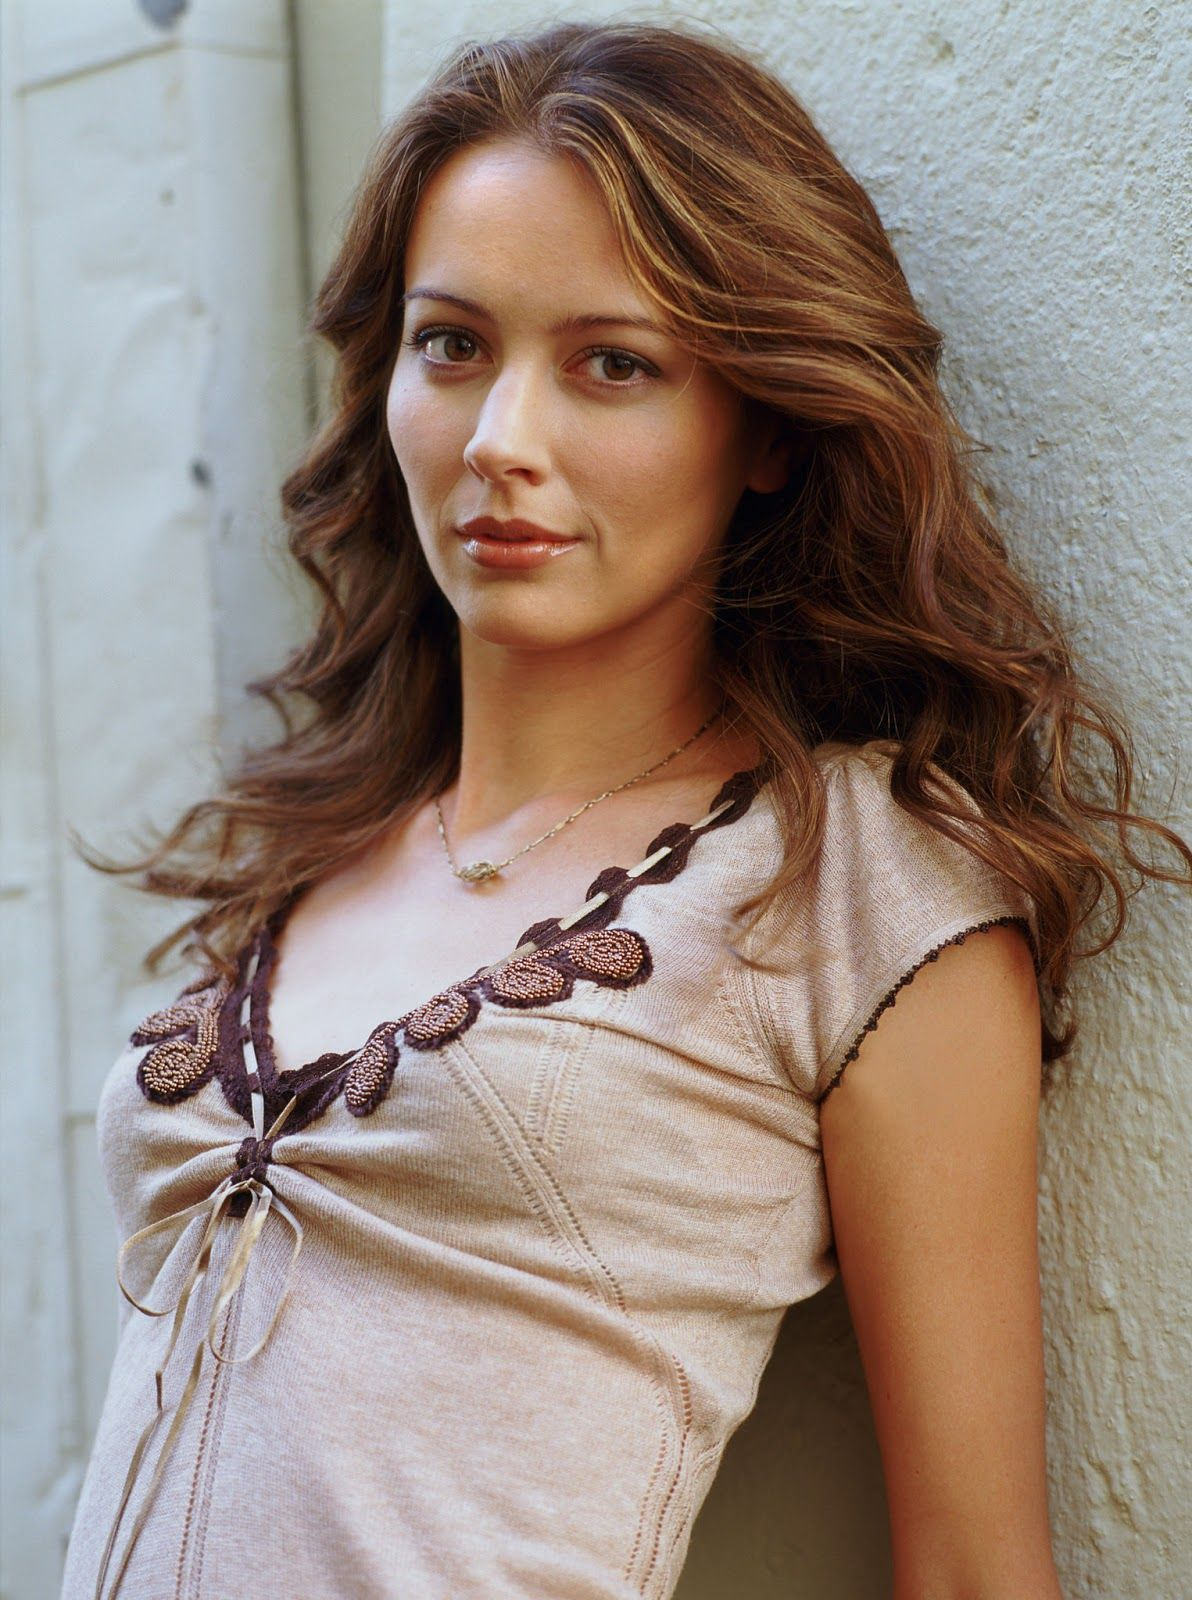 Amy Acker Nude - 2 Pictures: Rating 8.63/10